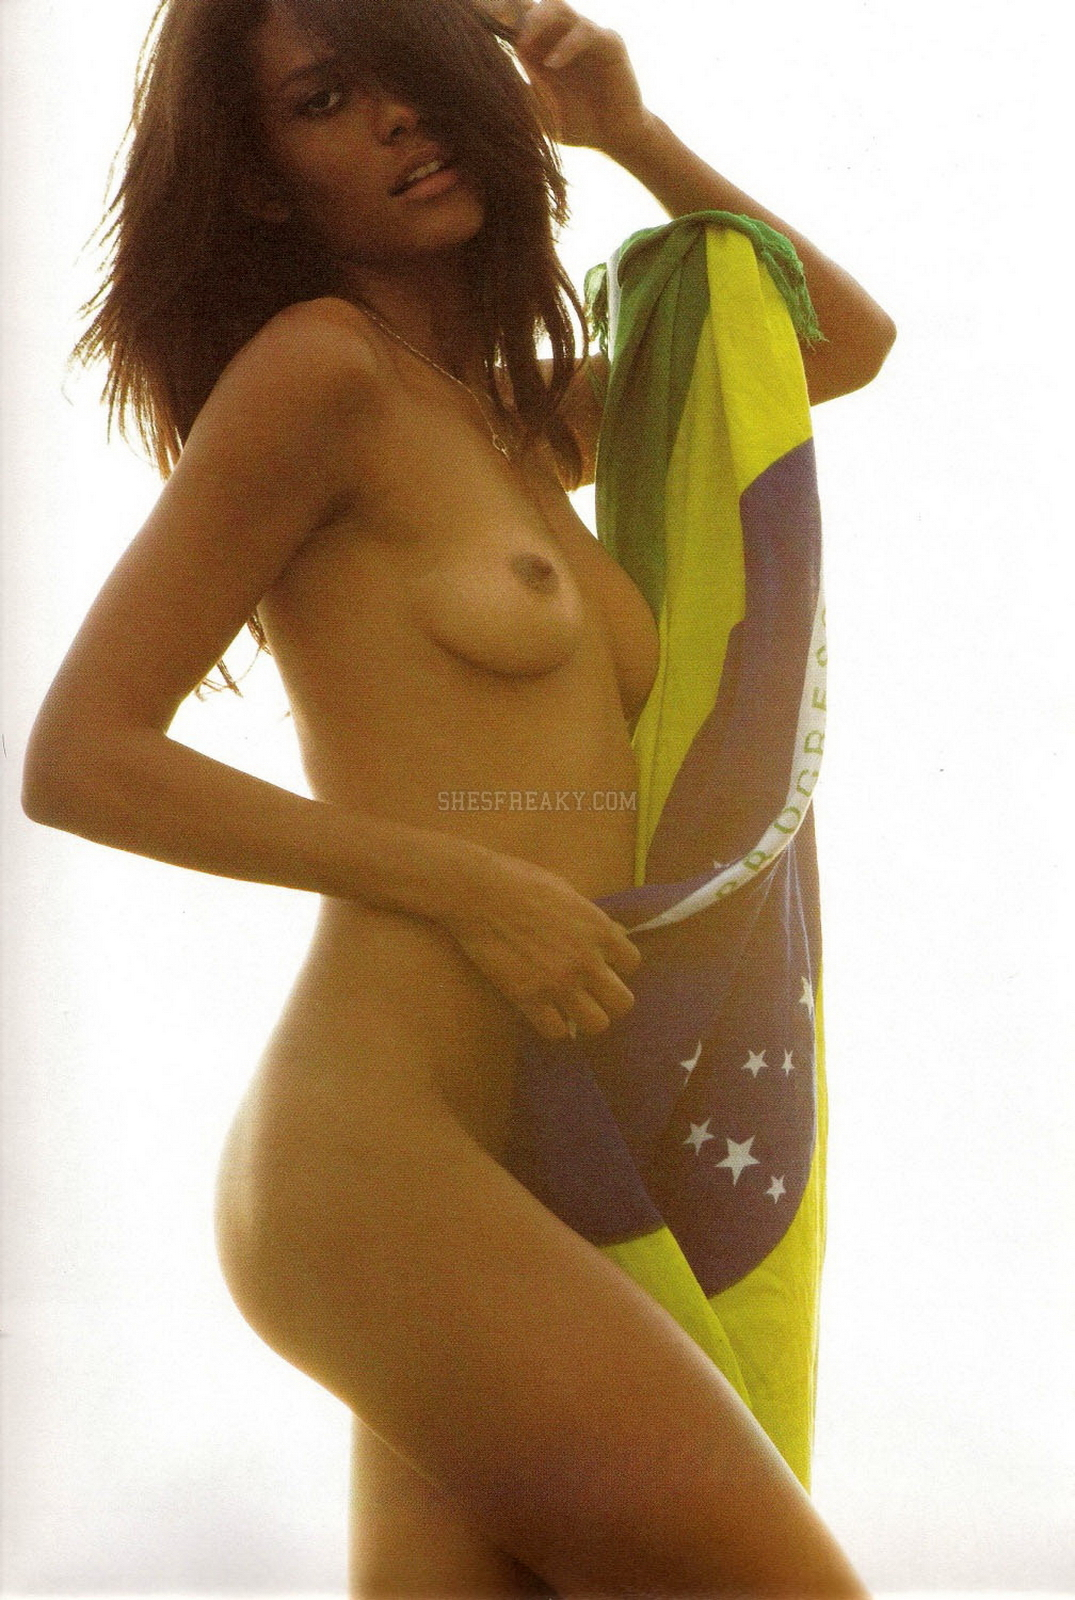 Erotic Pictures Tila tequila porn movies and pics